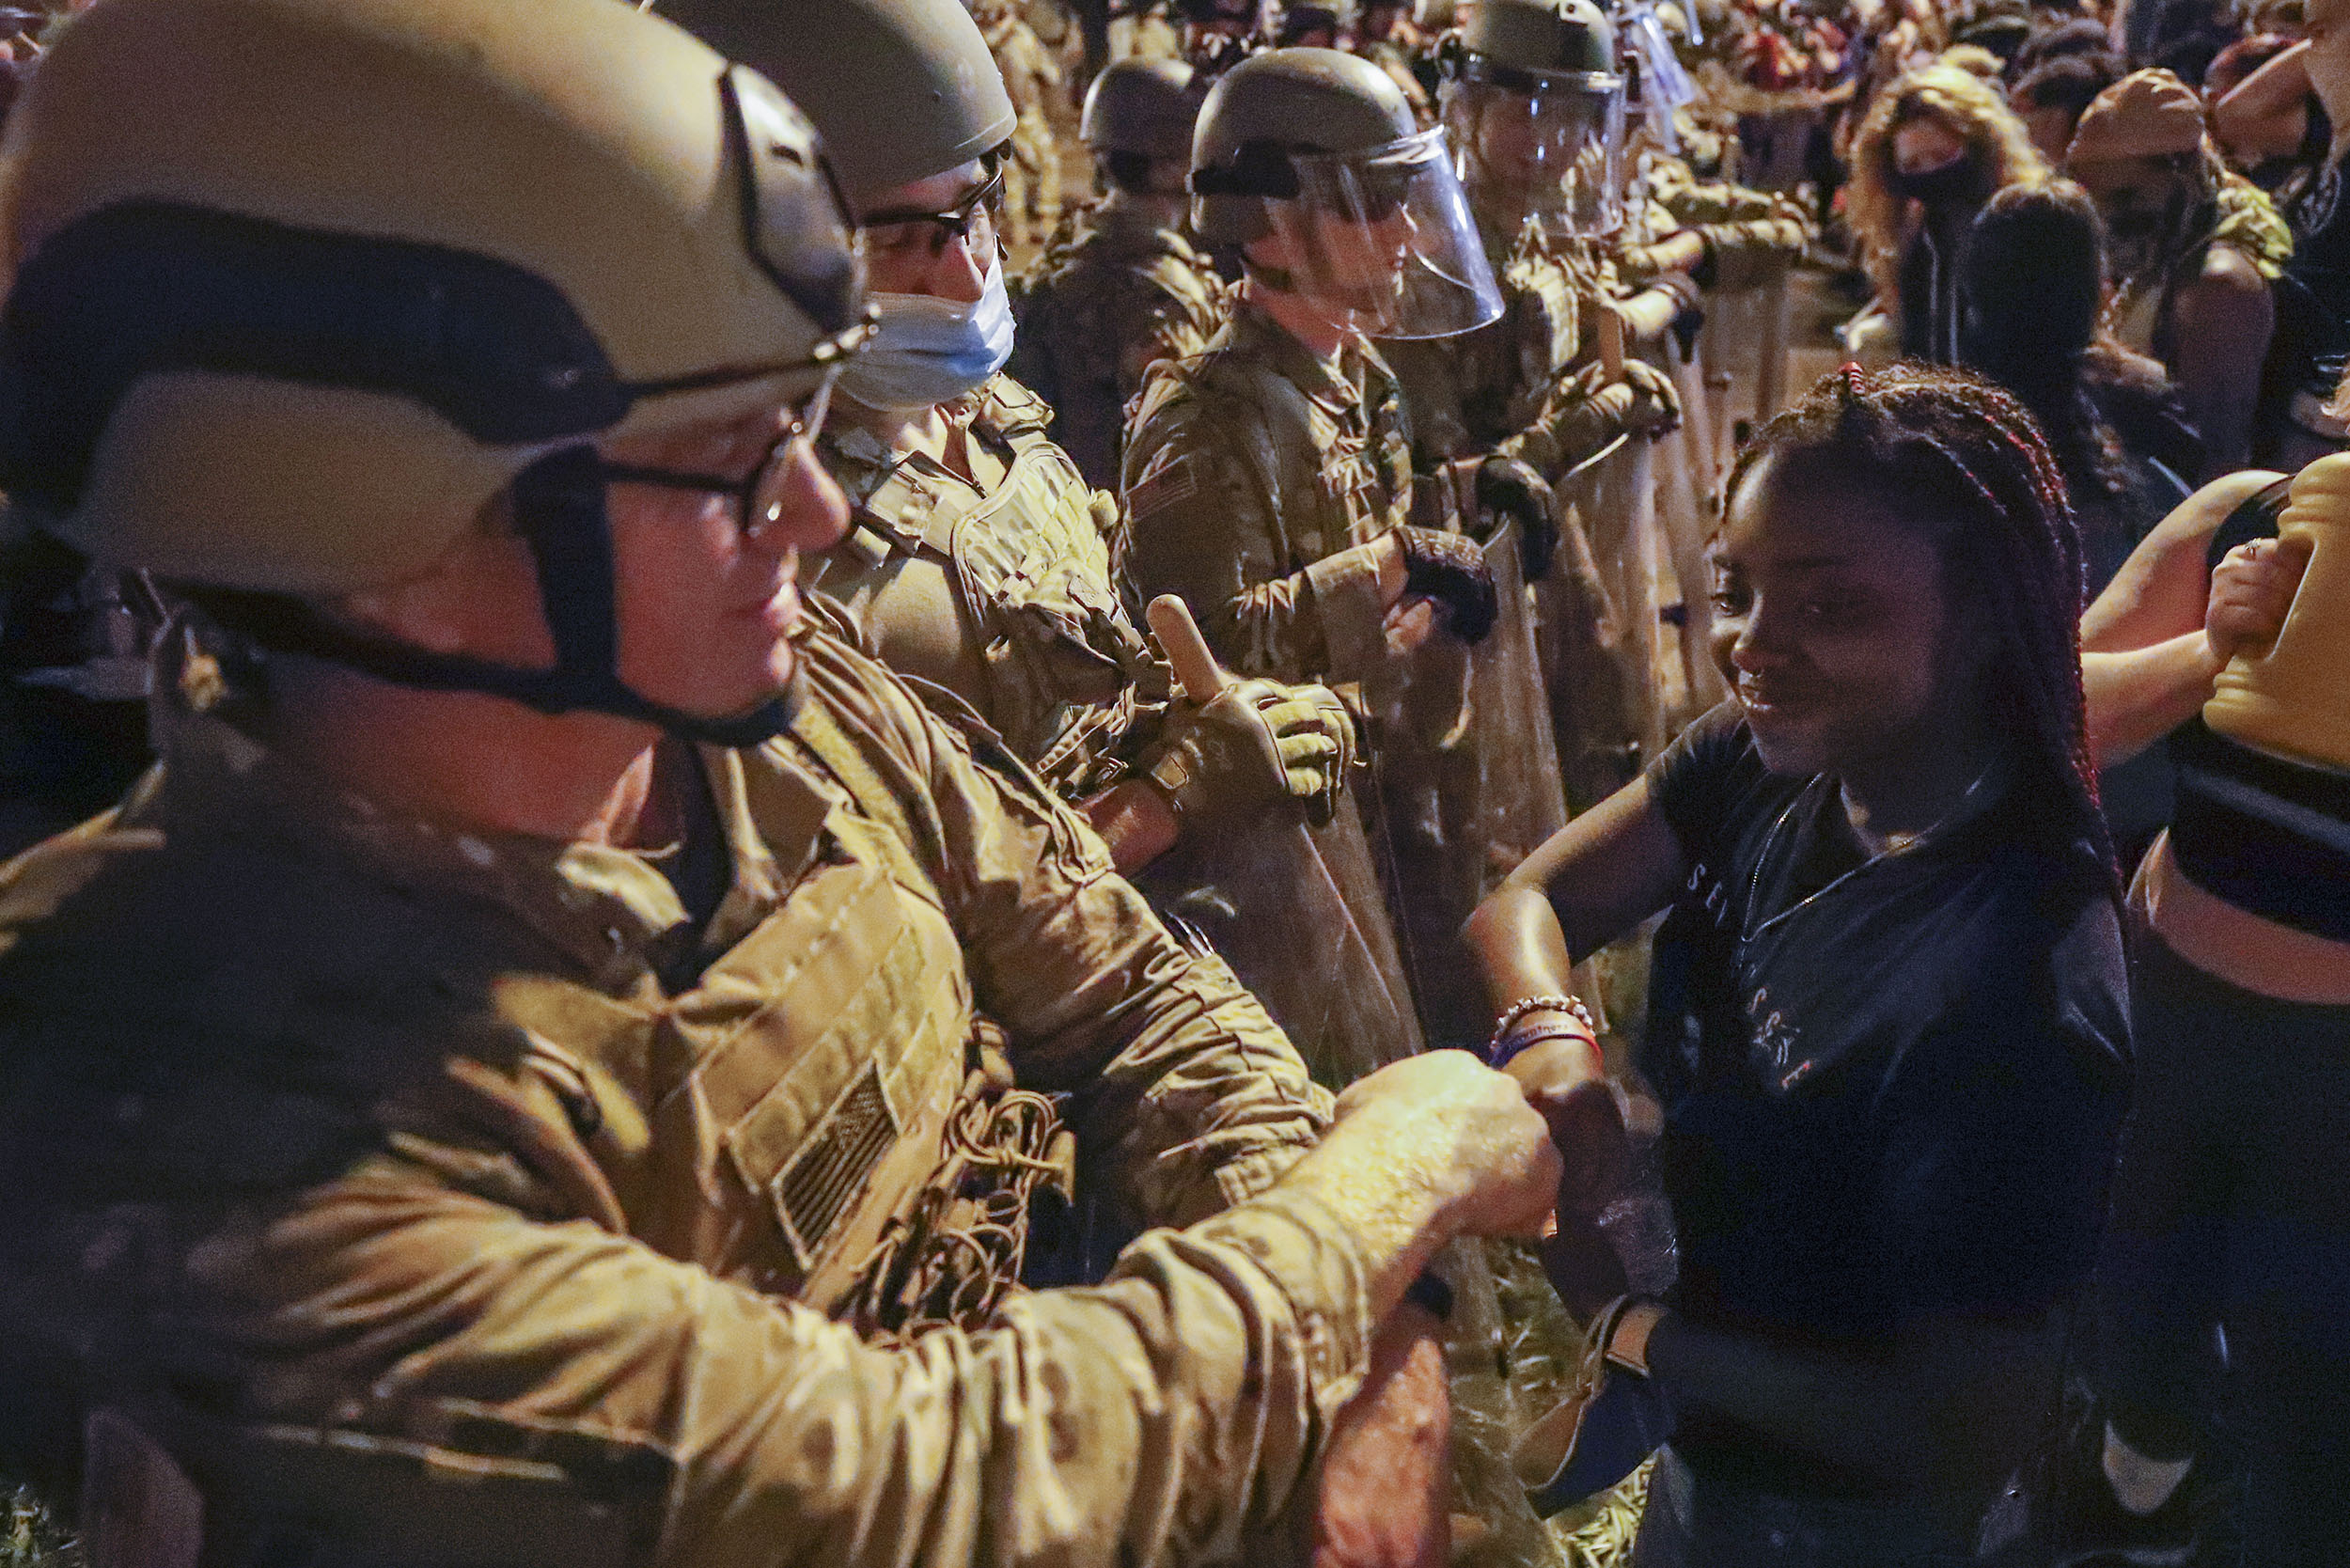 A Utah National Guard solider fist-bumps with a demonstrator as protests over the death of George Floyd continue in Washington DC, on Wednesday, June 3.